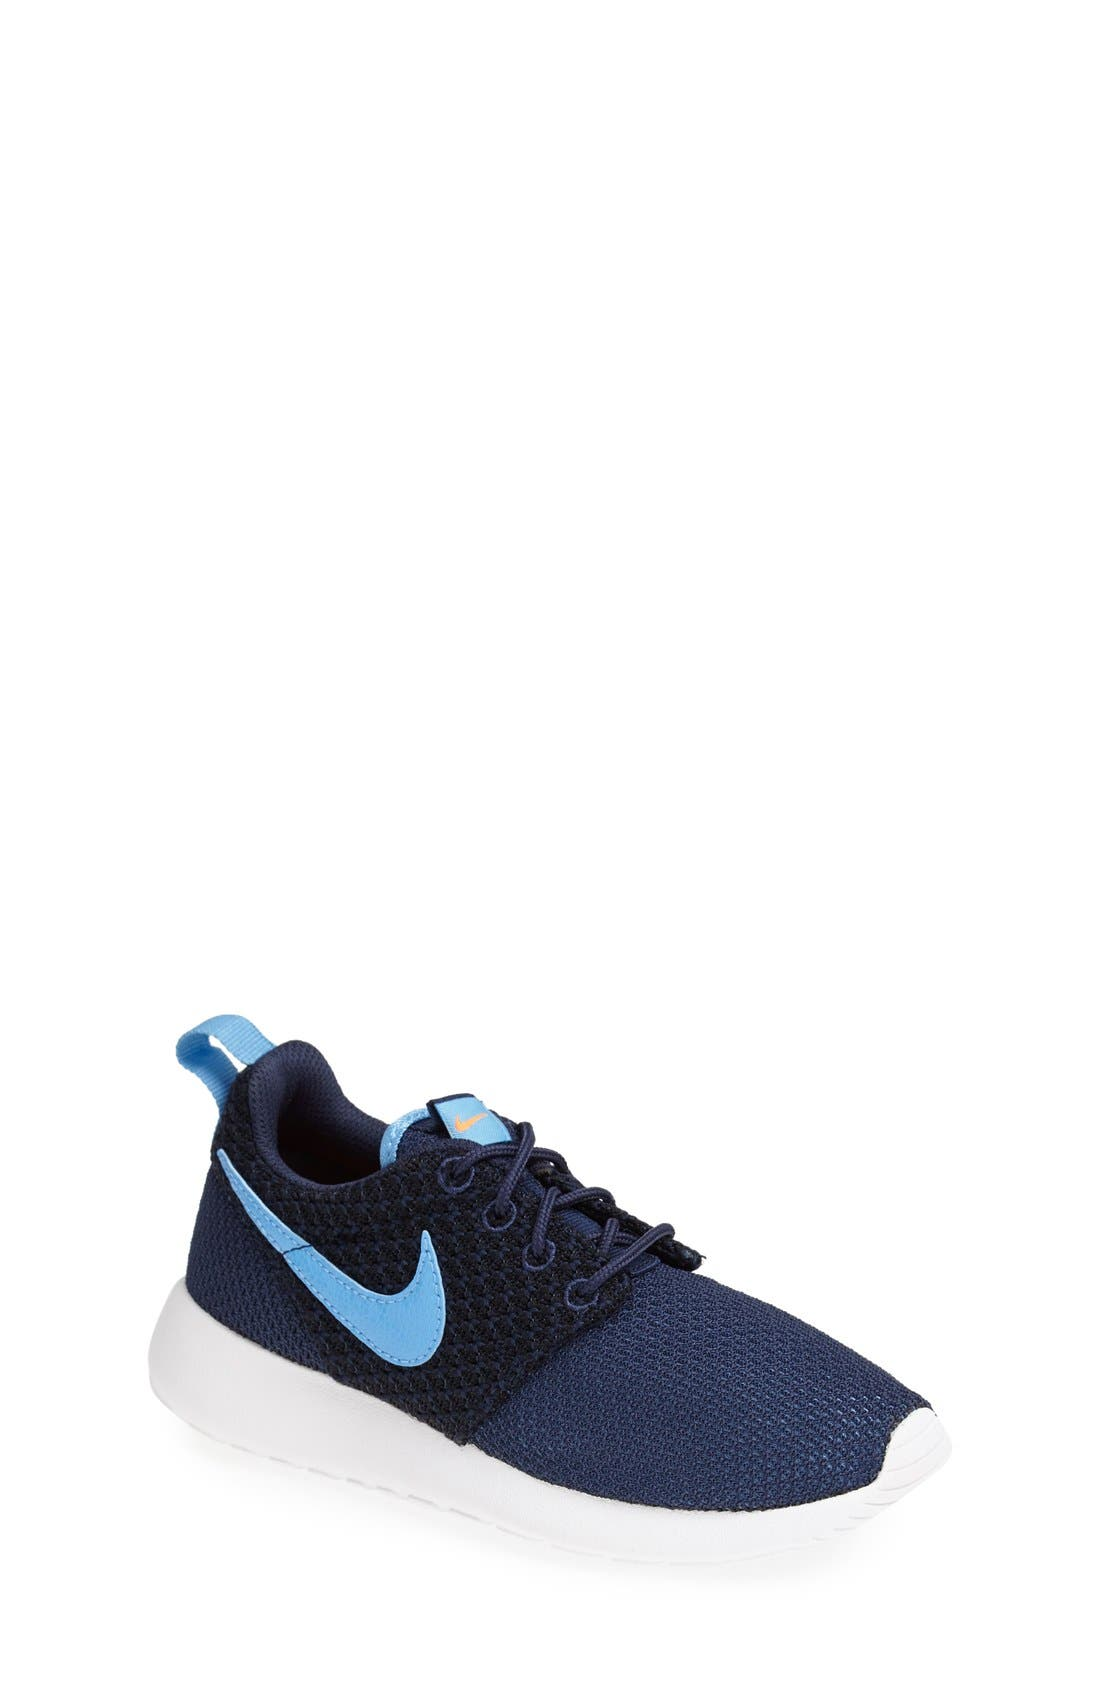 'Roshe Run' Sneaker,                             Main thumbnail 38, color,